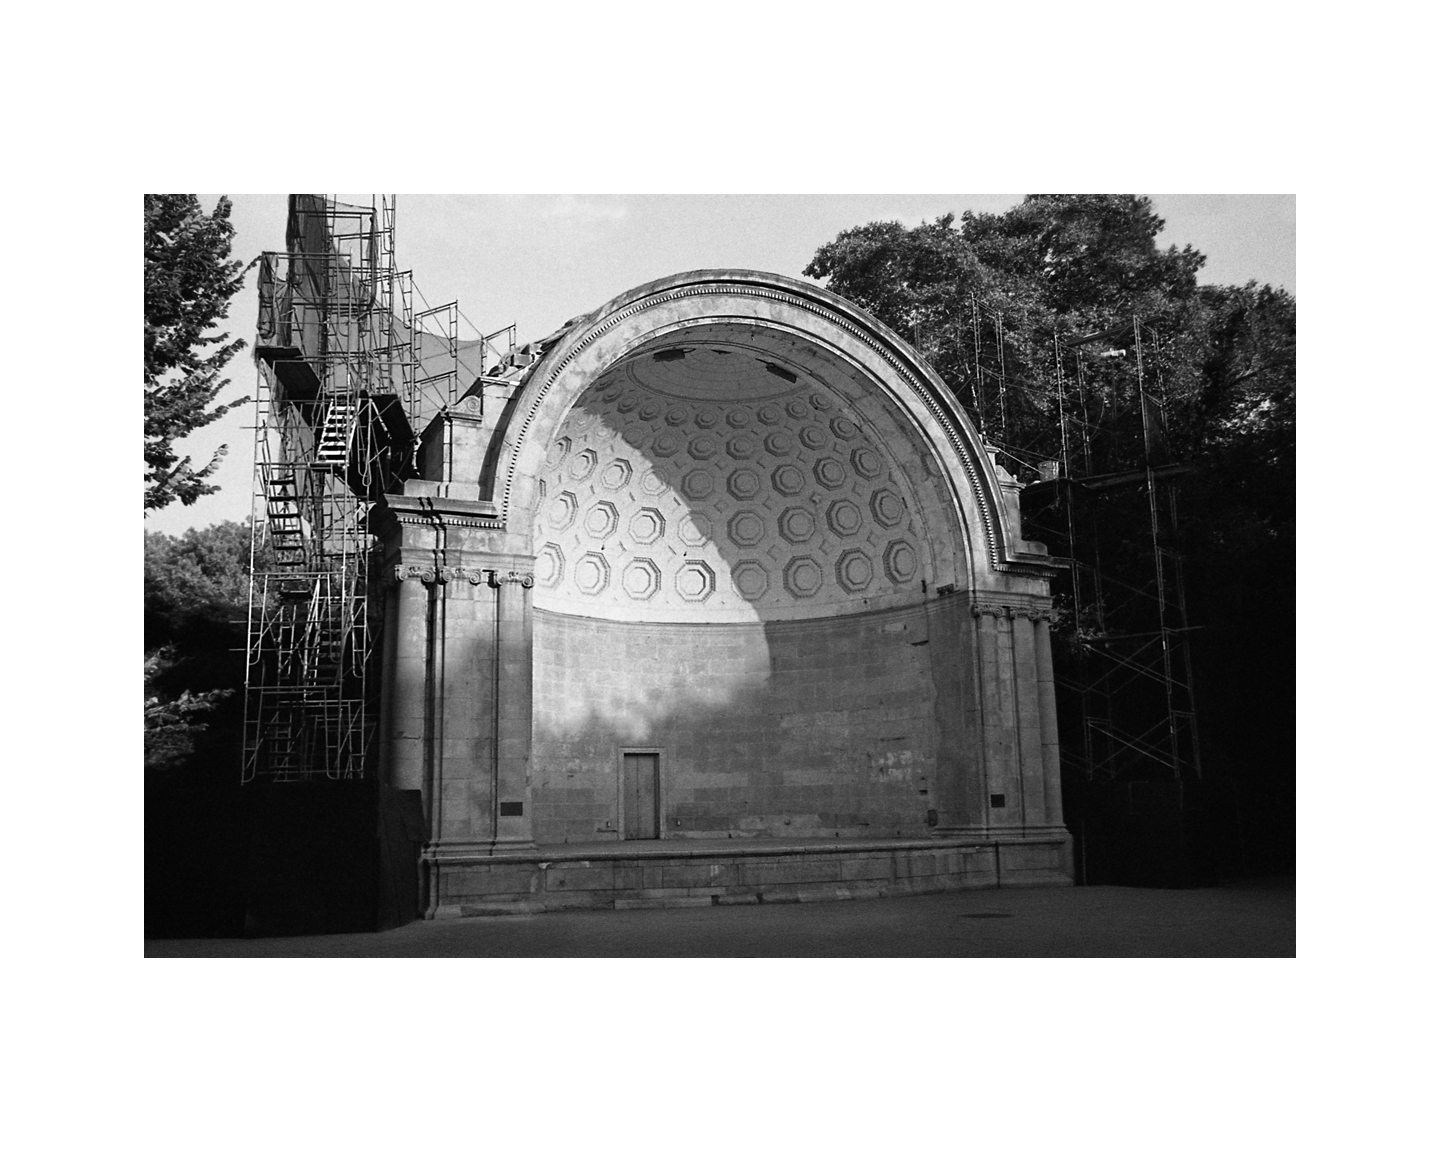 Dome in Central Park